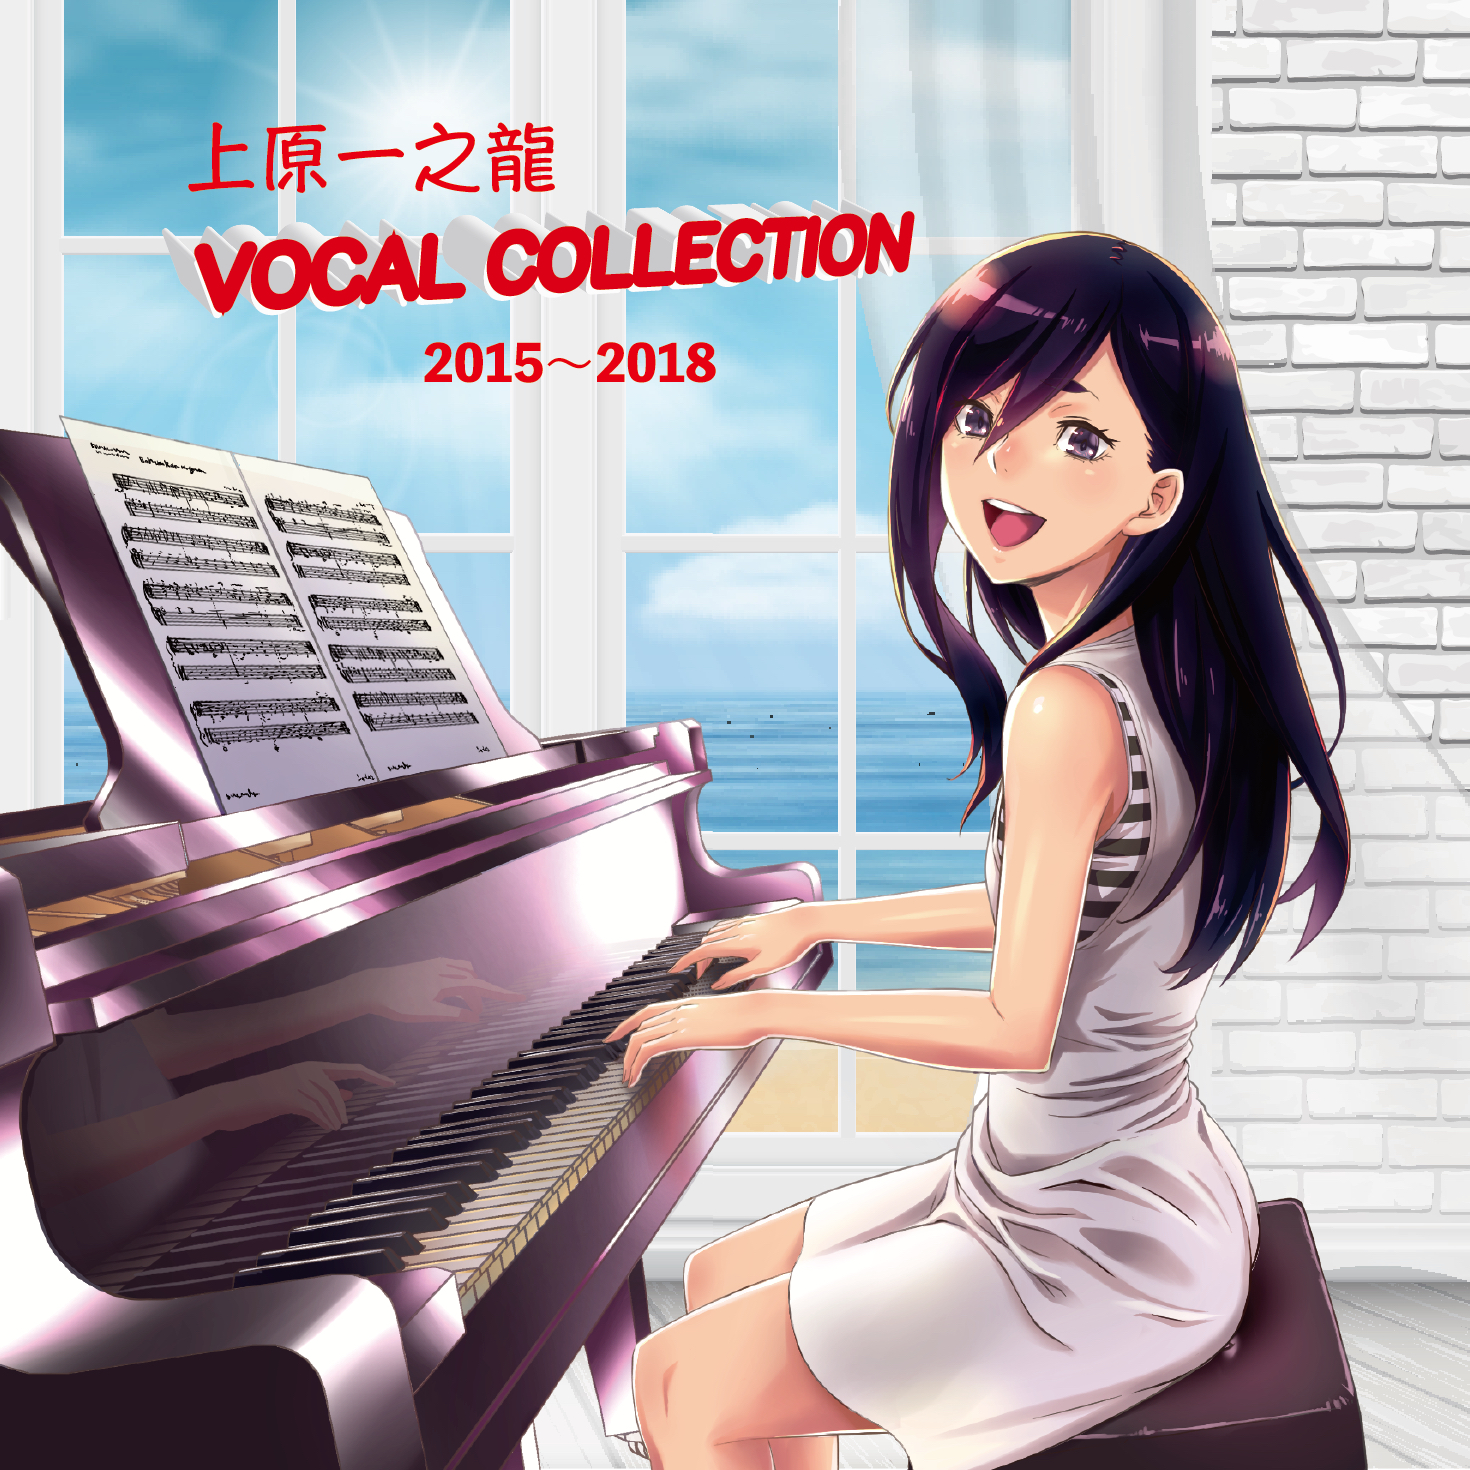 アルバム/CLOCKUP & Laplacian・Vocal Collection 2015〜2018/ceui、MAMI、み〜こ